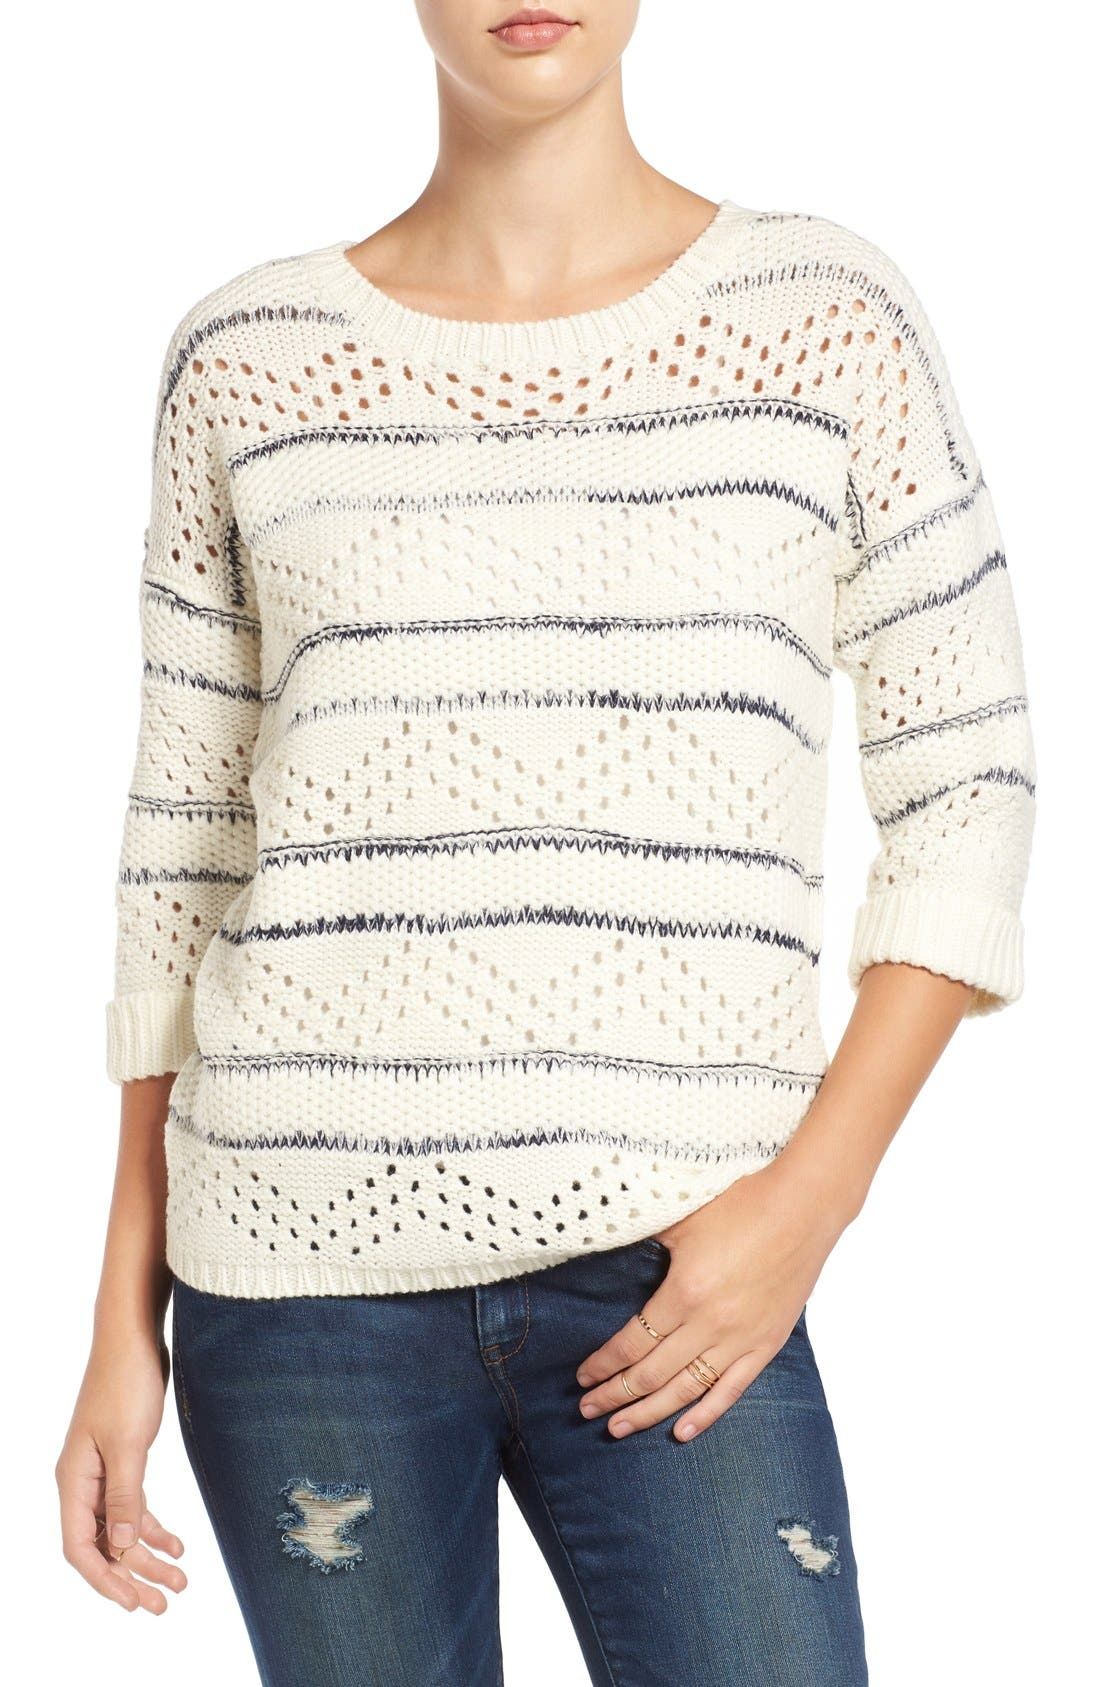 Alternate Image 1 Selected - Elodie Stripe Pointelle Knit Sweater